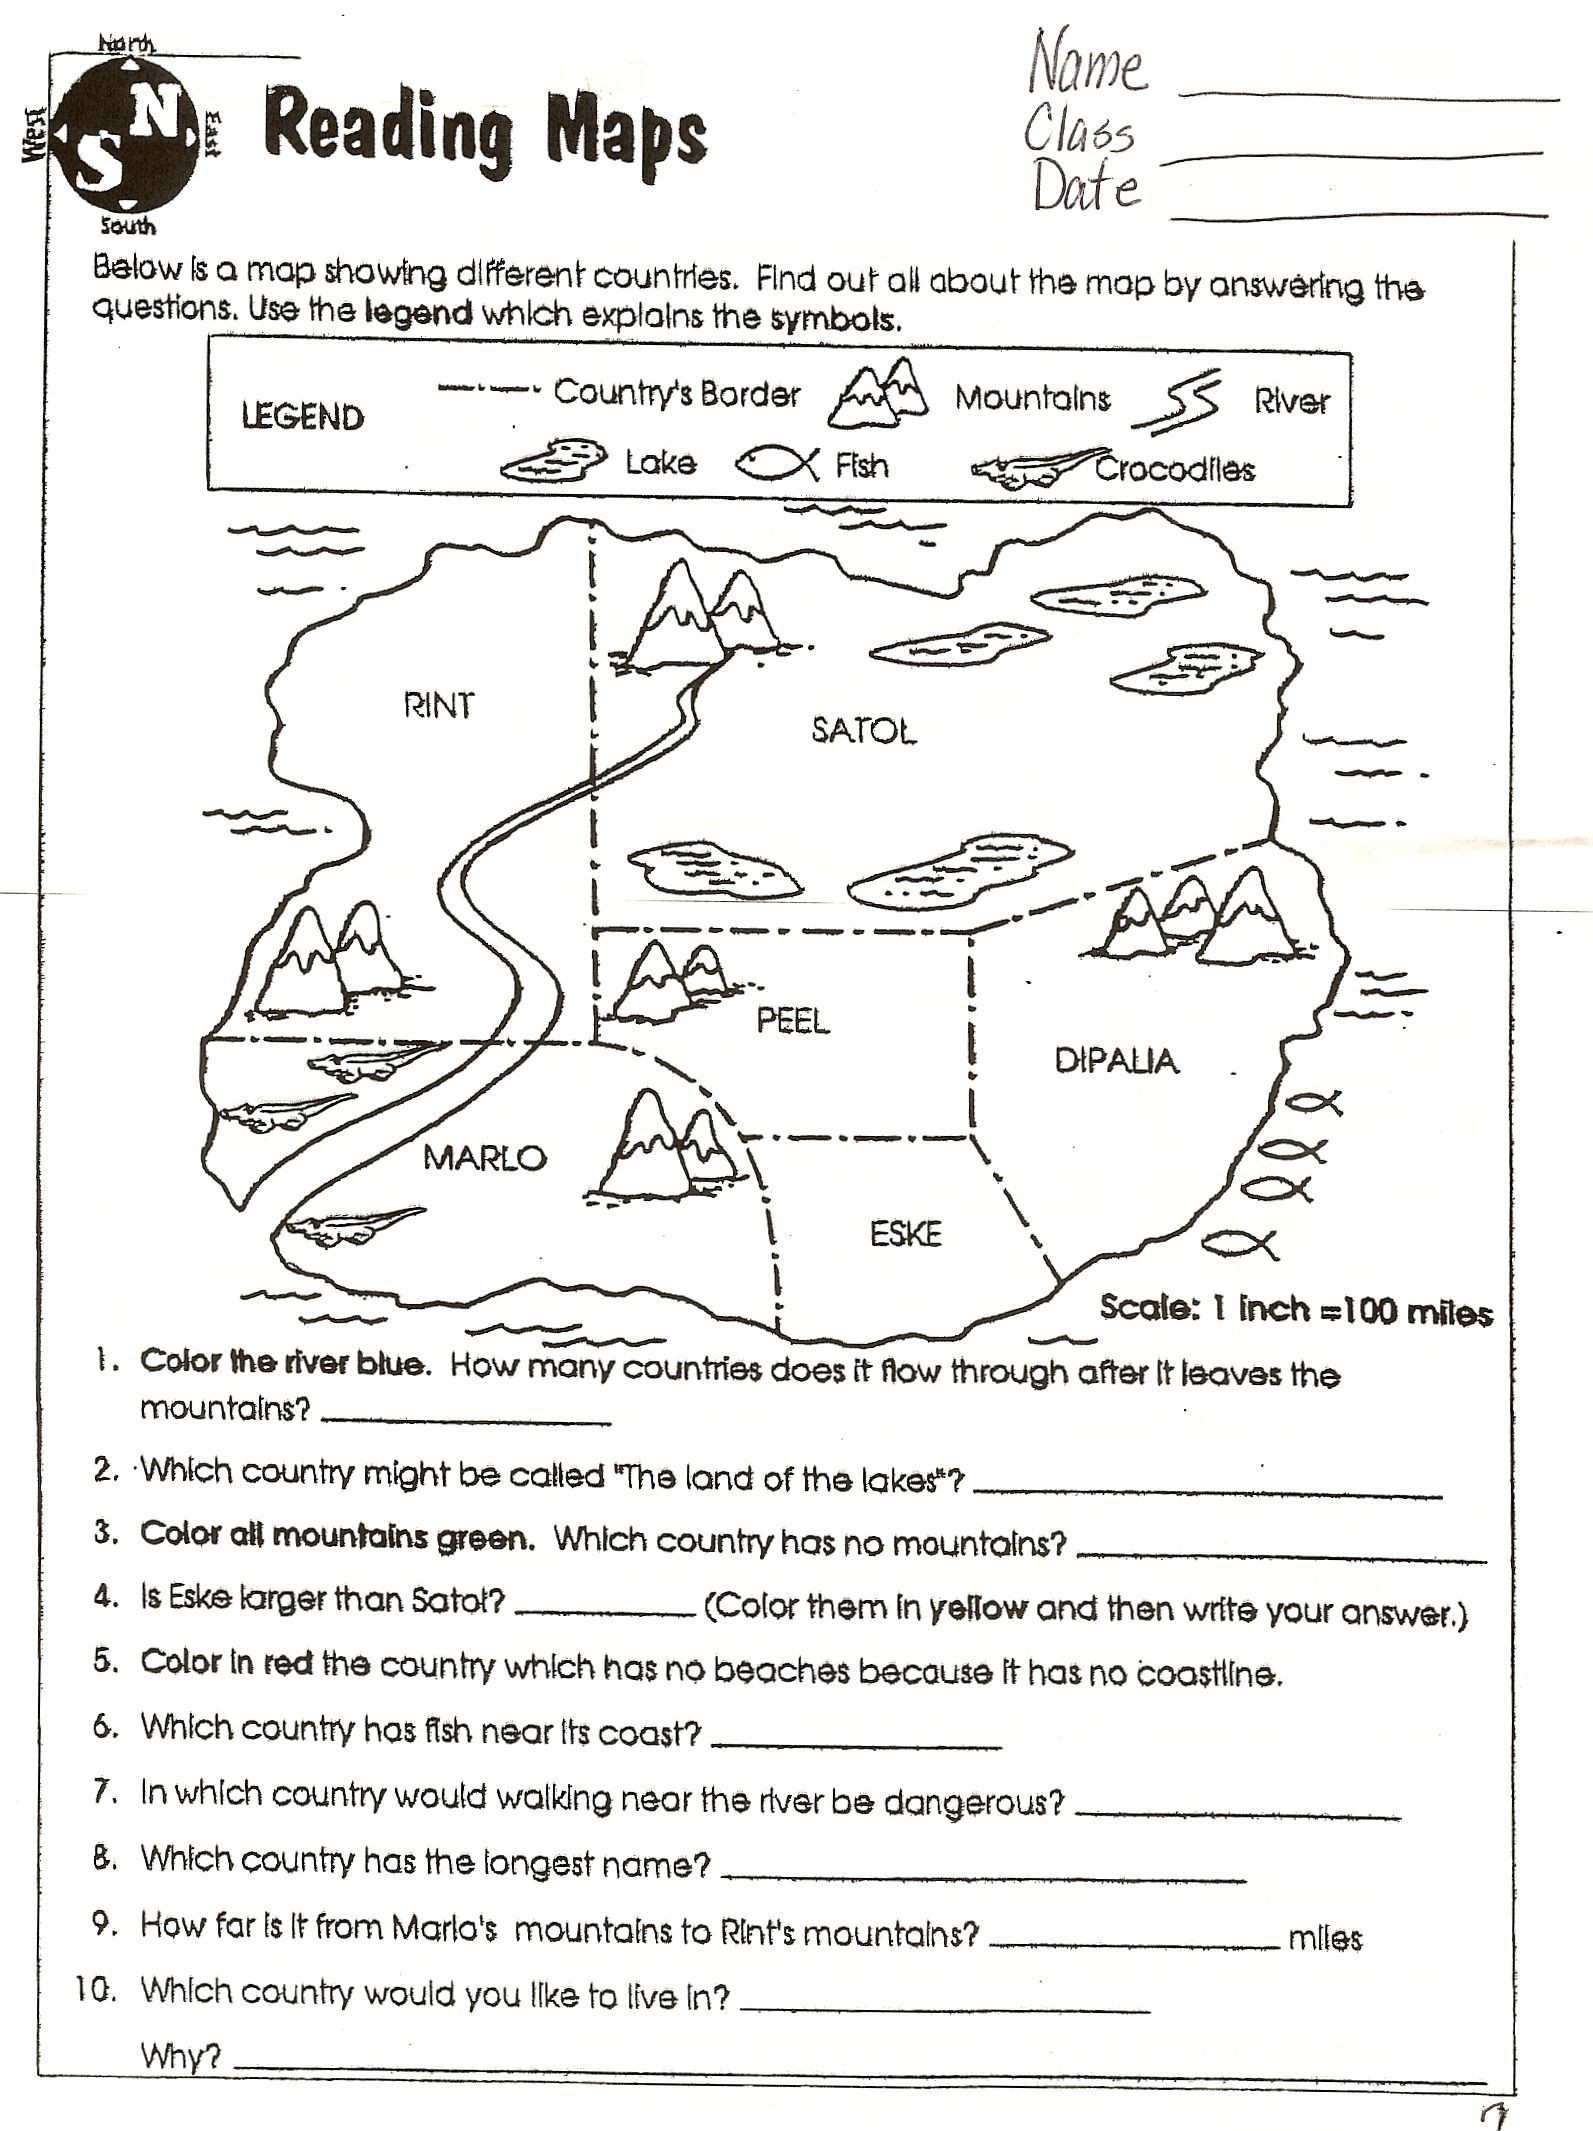 Reading Comprehension Worksheets 6th Grade Reading Worksheets Grade 6th social Stu S Prehension